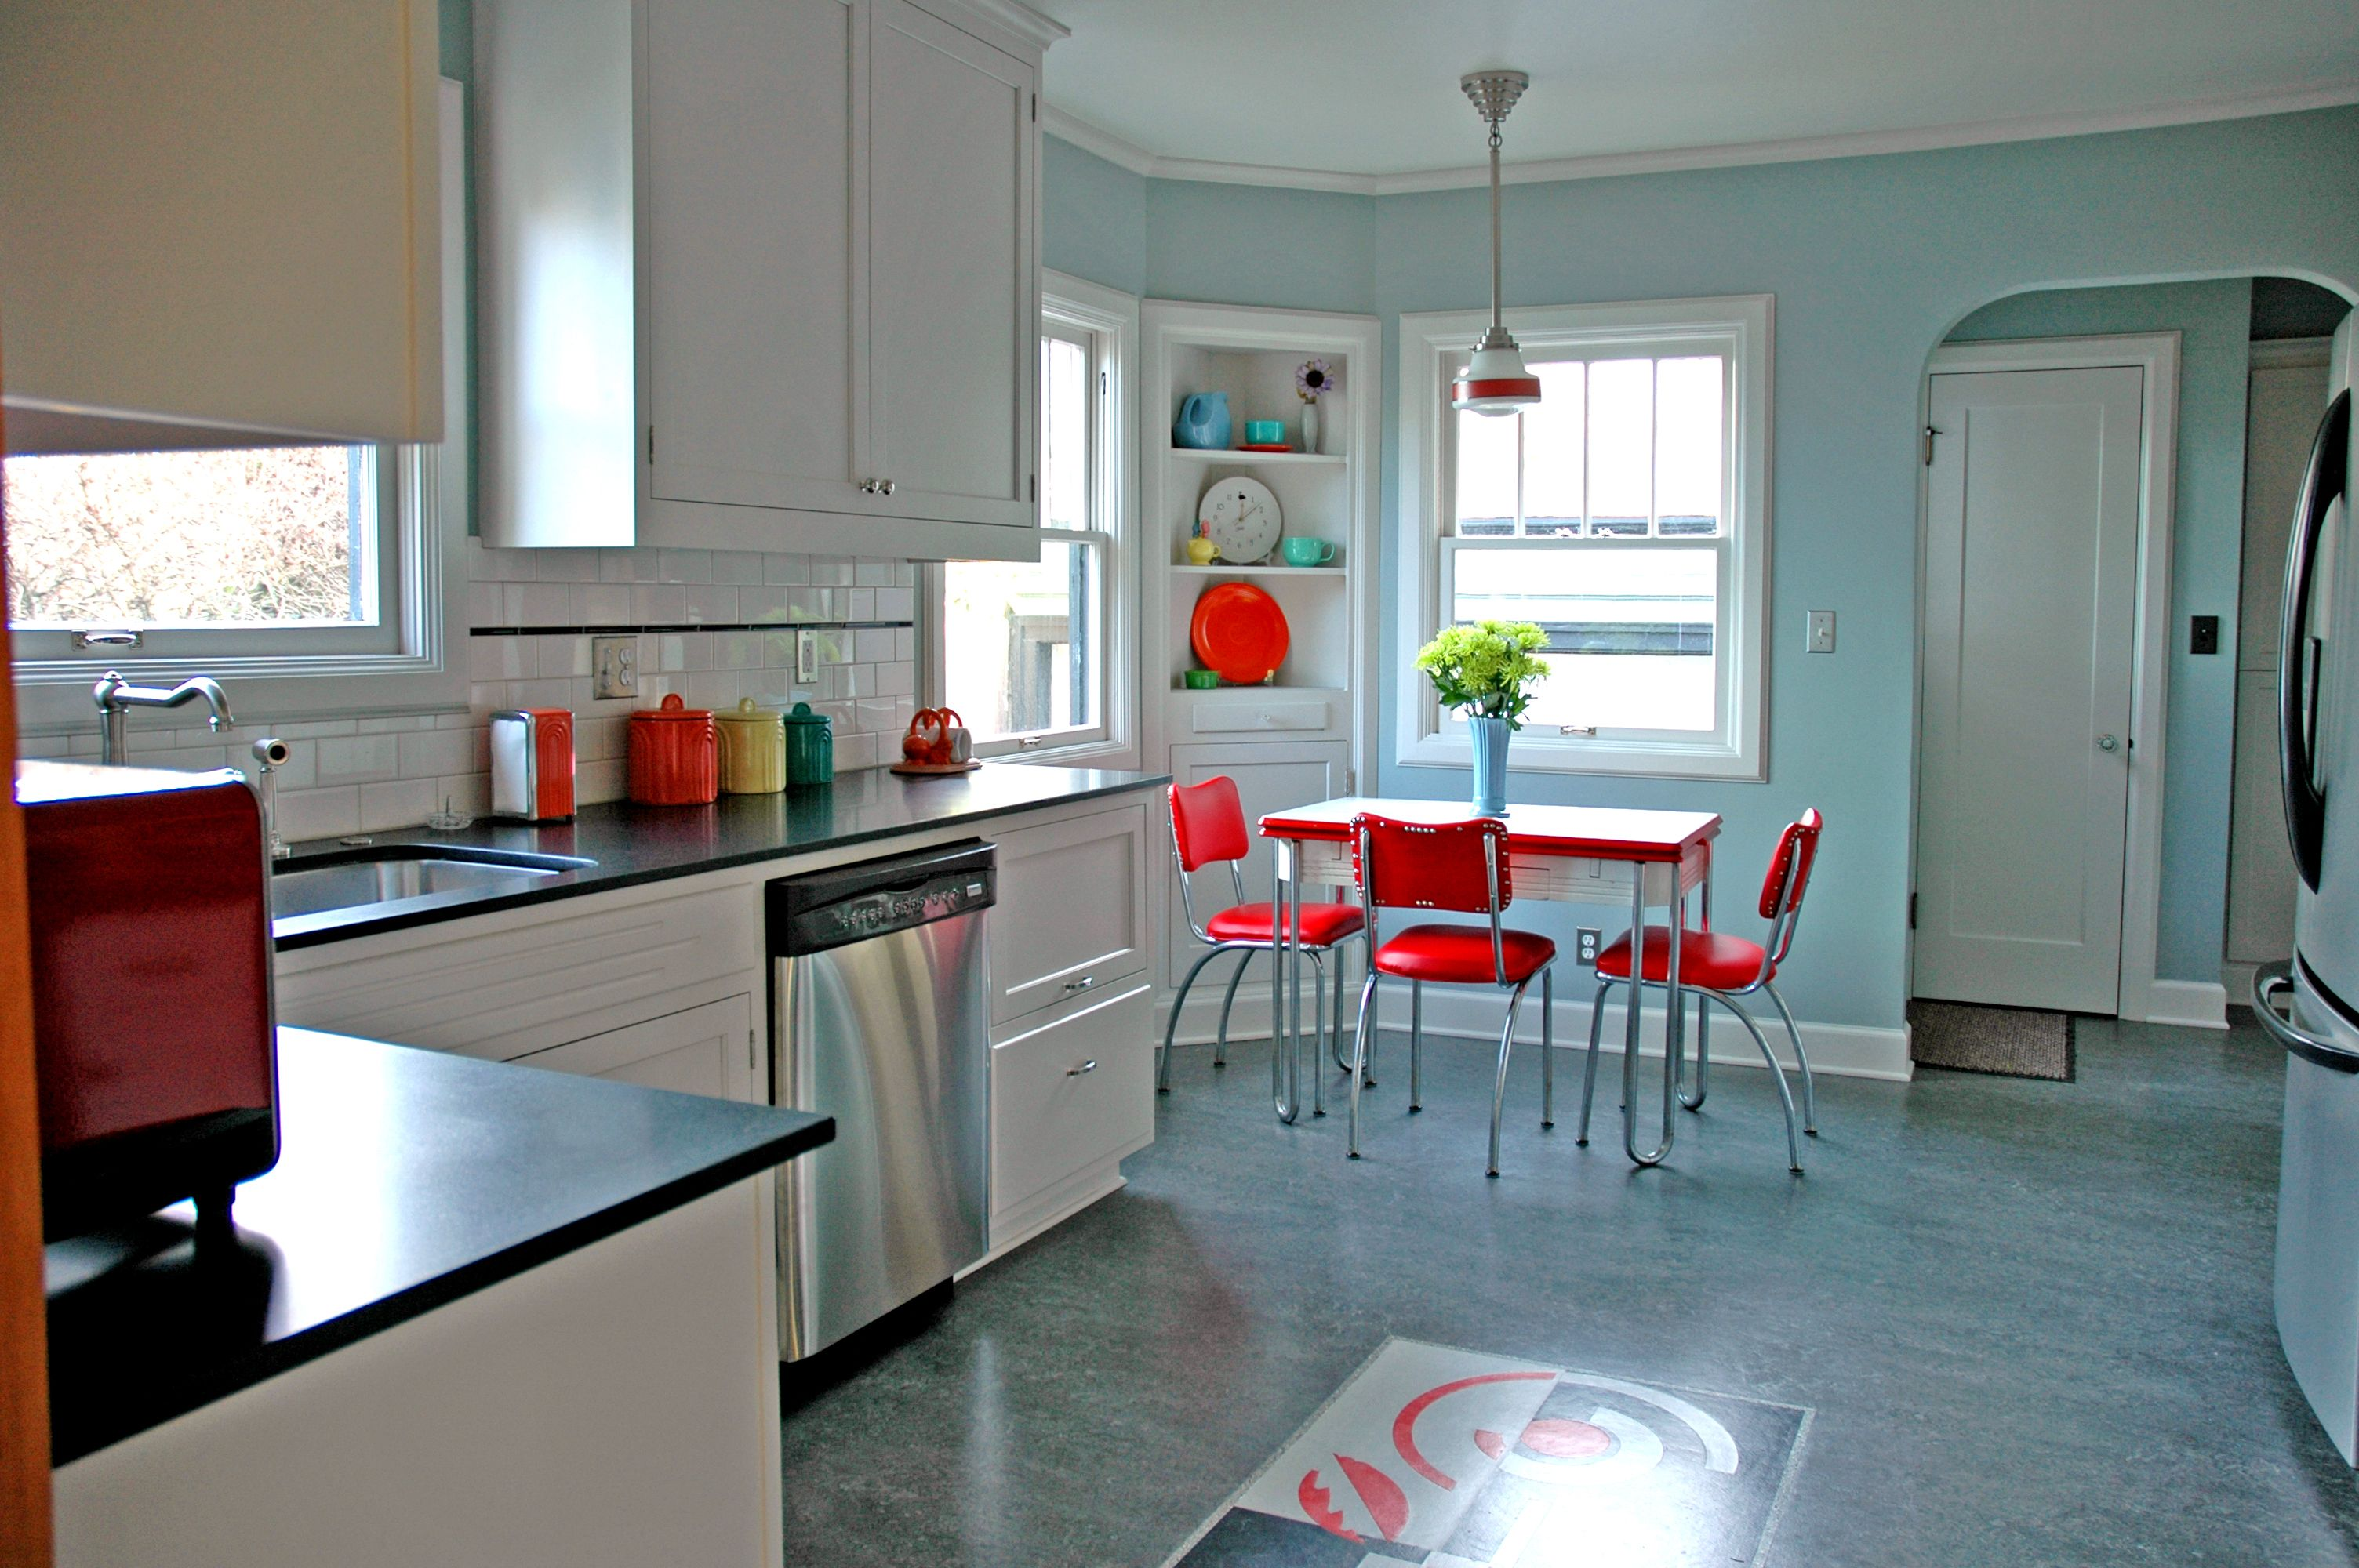 Nice Red Pieces Really Pop In This Kitchen Designed